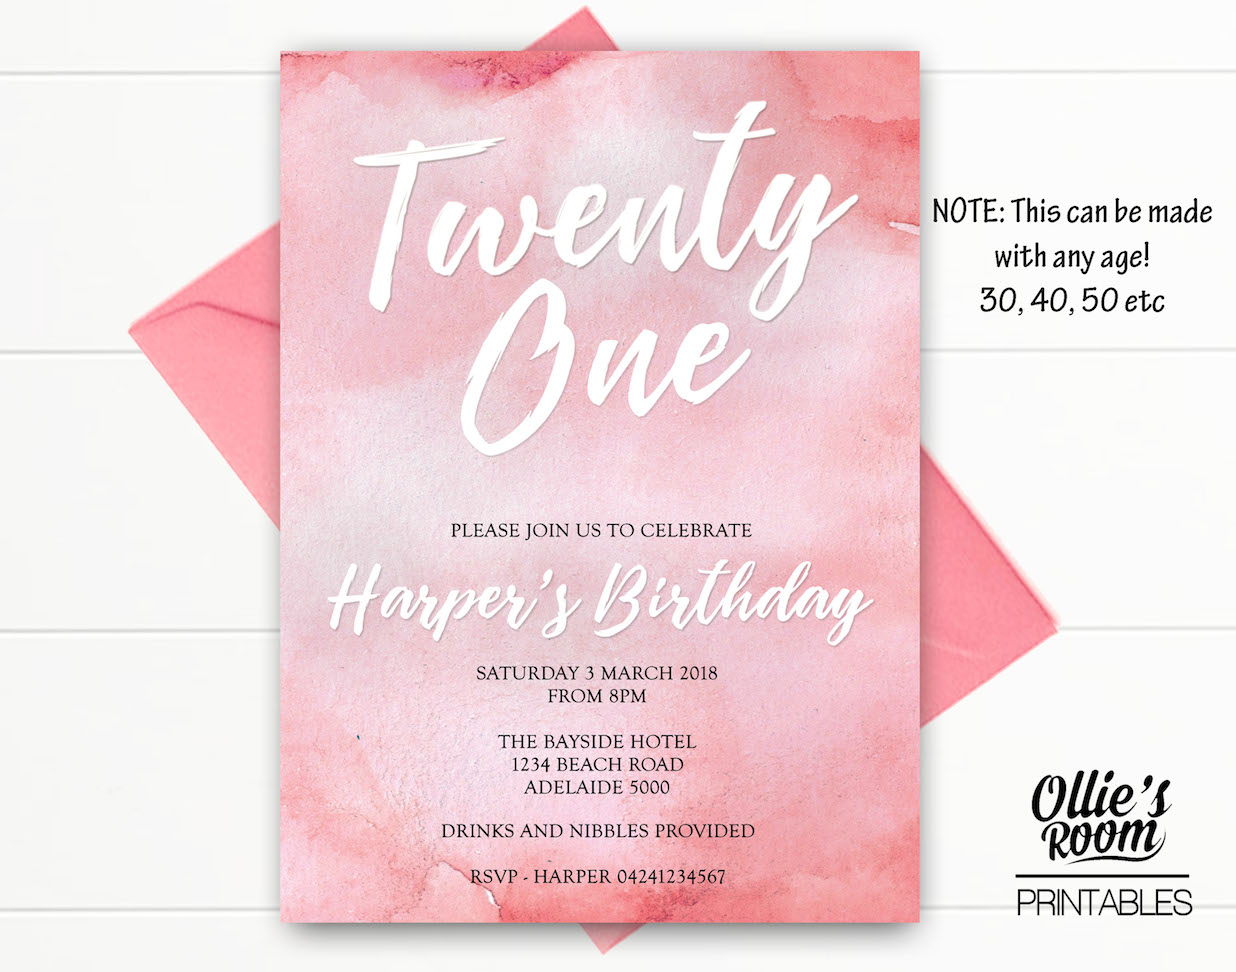 Watercolour Invitation, Twenty First Invitation, Thirty Birthday ...